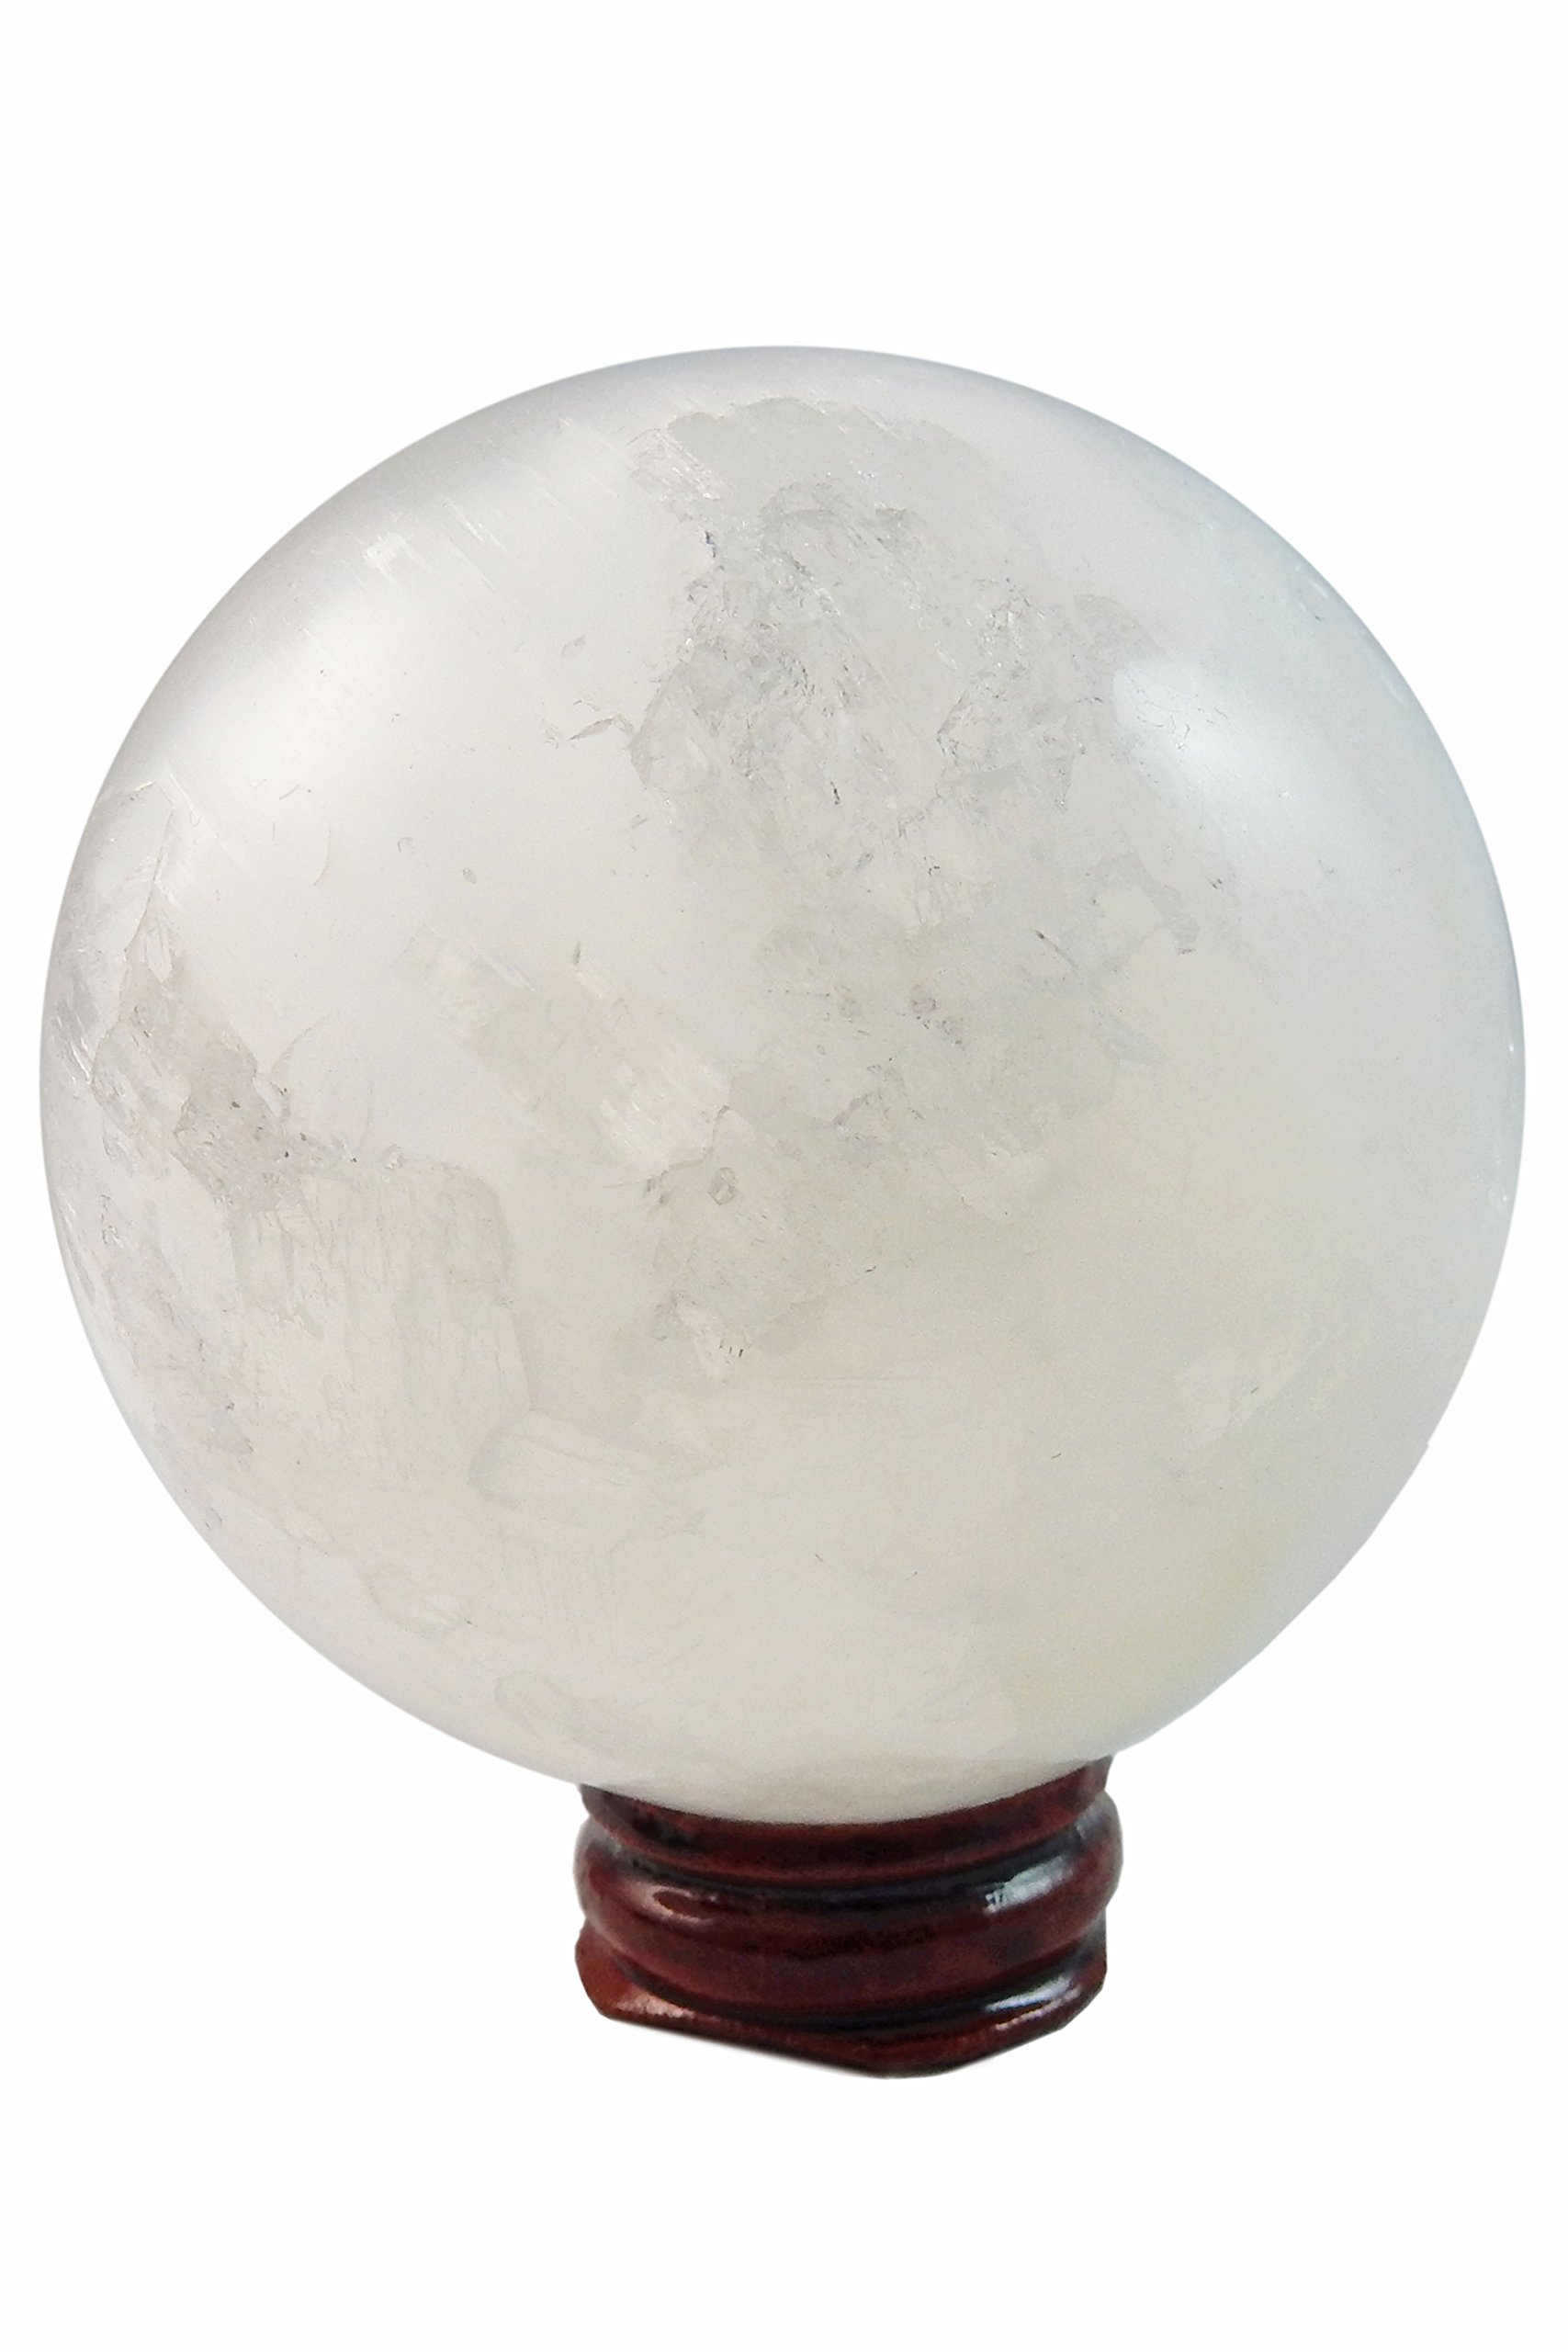 1 (One) Amazing Large Crystal Selenite Spiritual Healing Sphere / Ball on Wood Base with Certificate of Authenticity Beverly Oaks Exclusive by Beverly Oaks (Image #2)